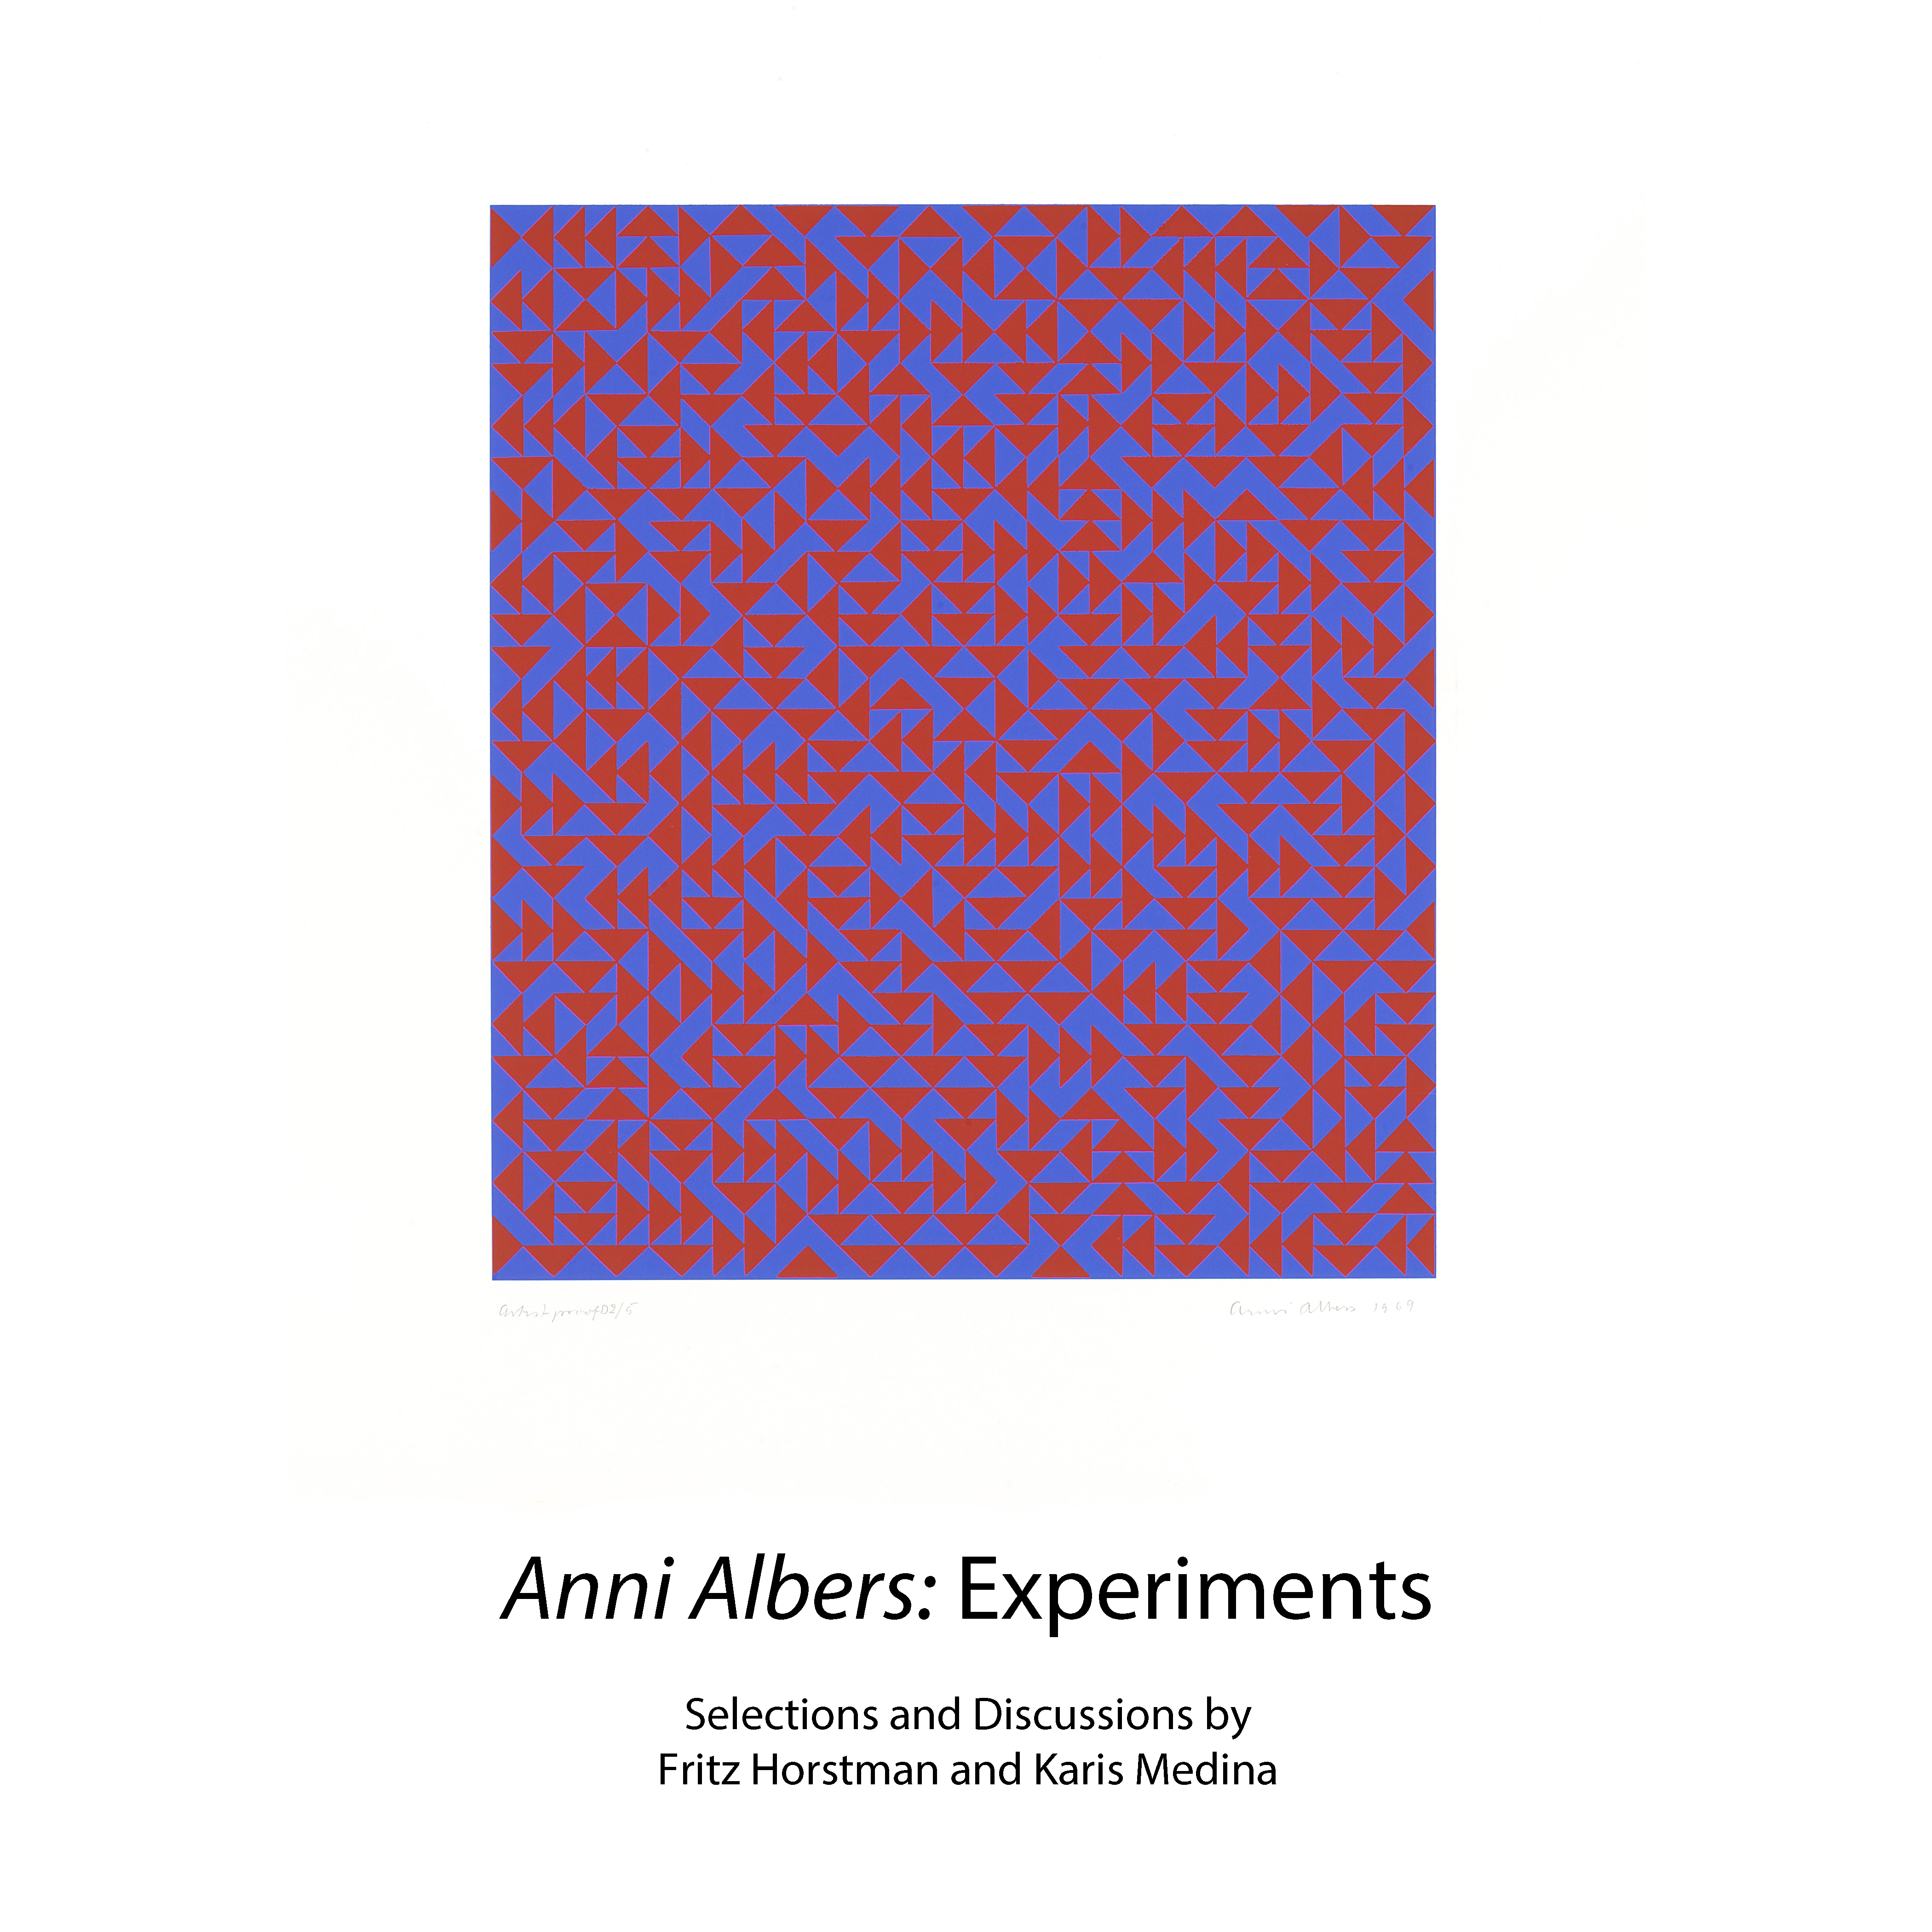 Anni Albers, <i>D</i>, 1969, Screenprint on paper.,  © 2020 The Josef and Anni Albers Foundation/ARS, NY.